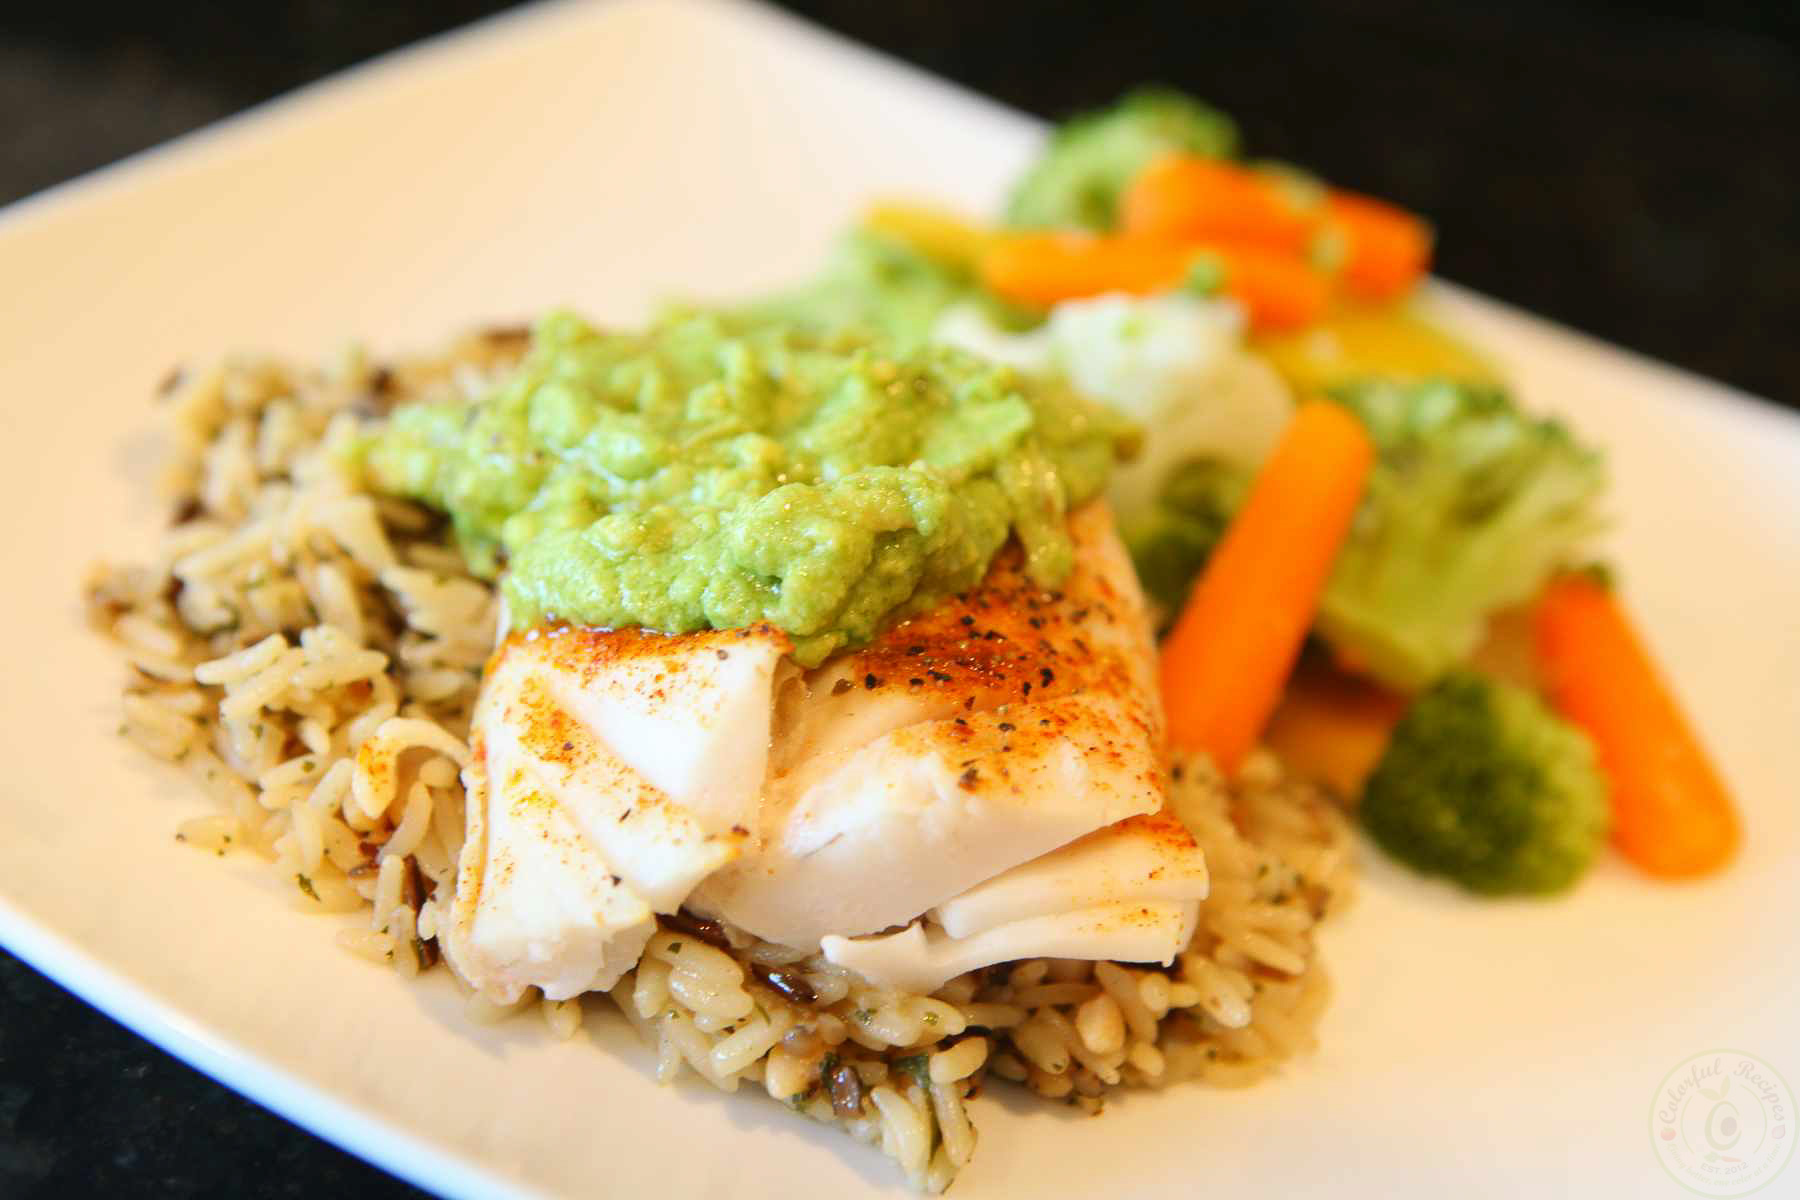 fish pacific cod avocado sauce colorful recipes